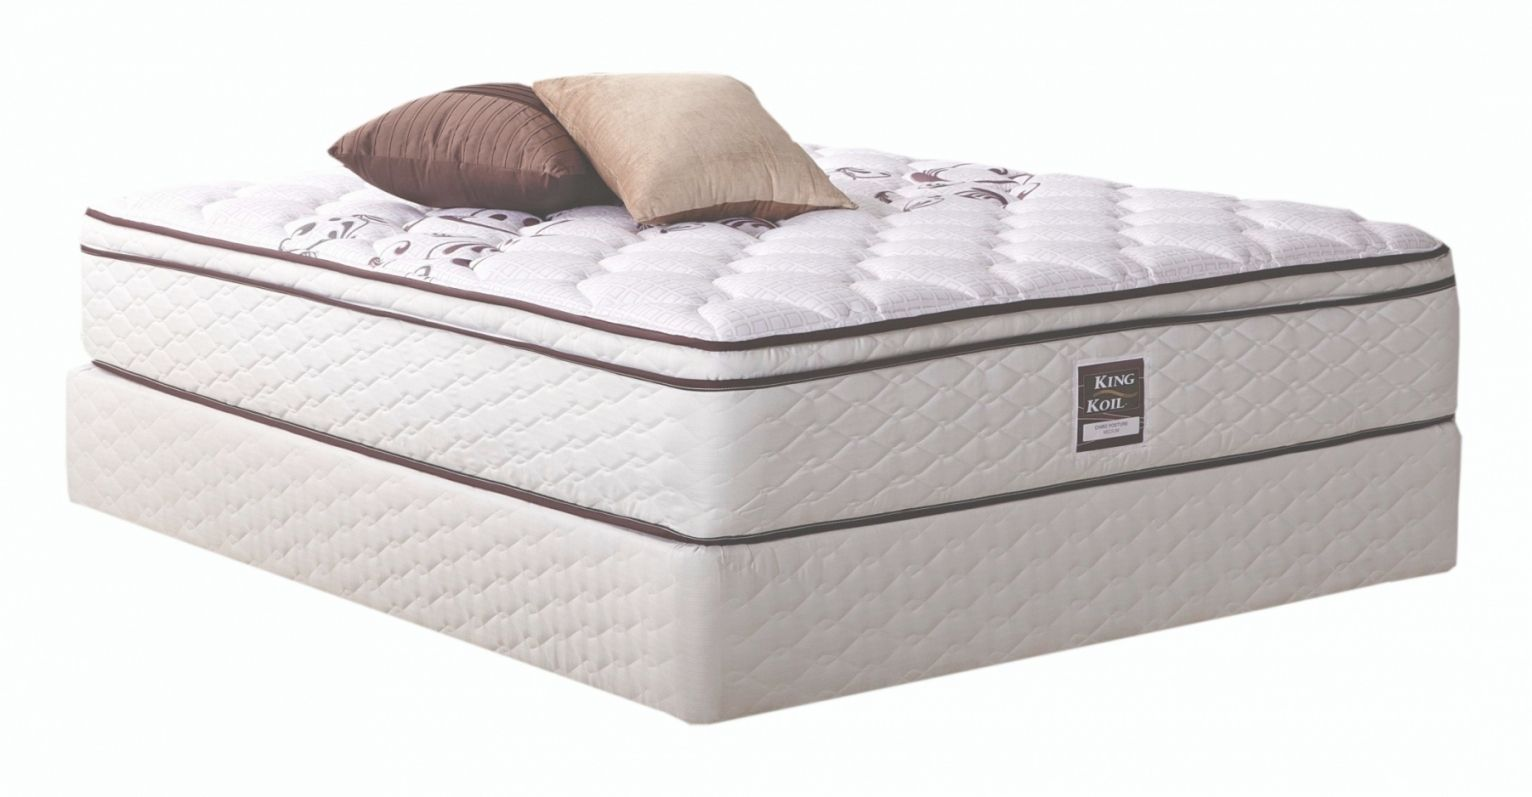 #pillowtopmattress